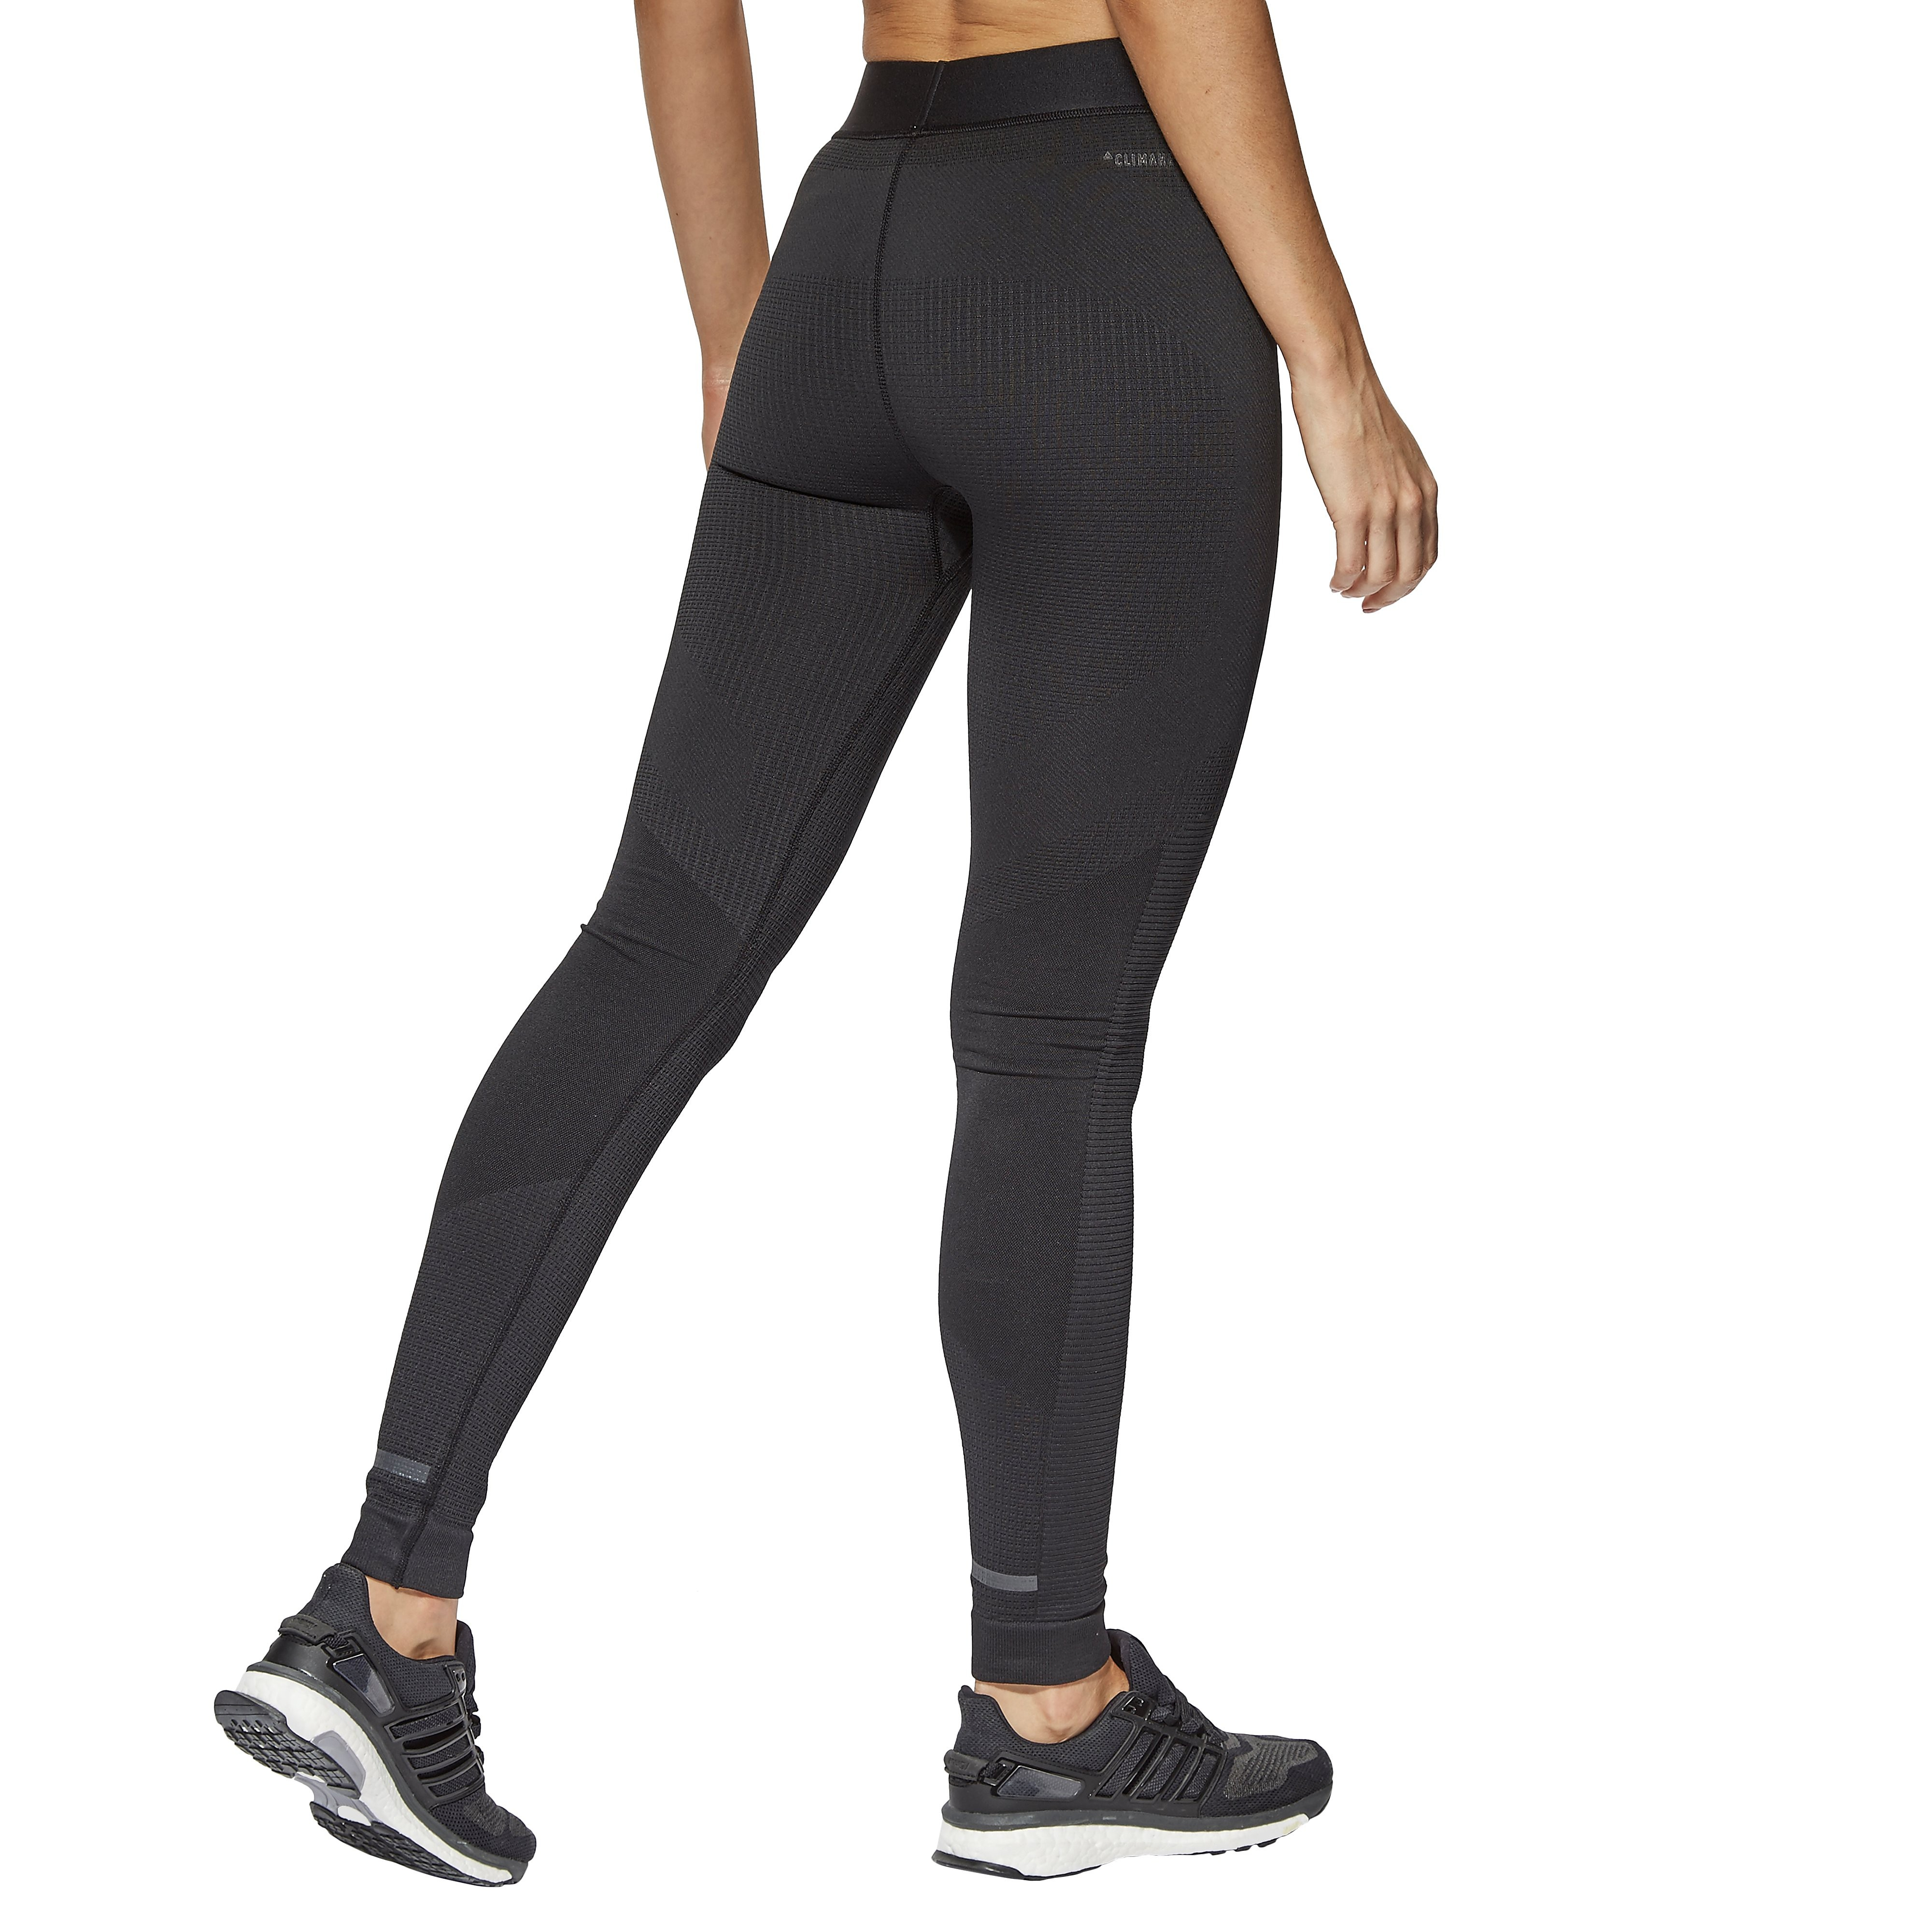 adidas Climaheat Seamless Women's Tights